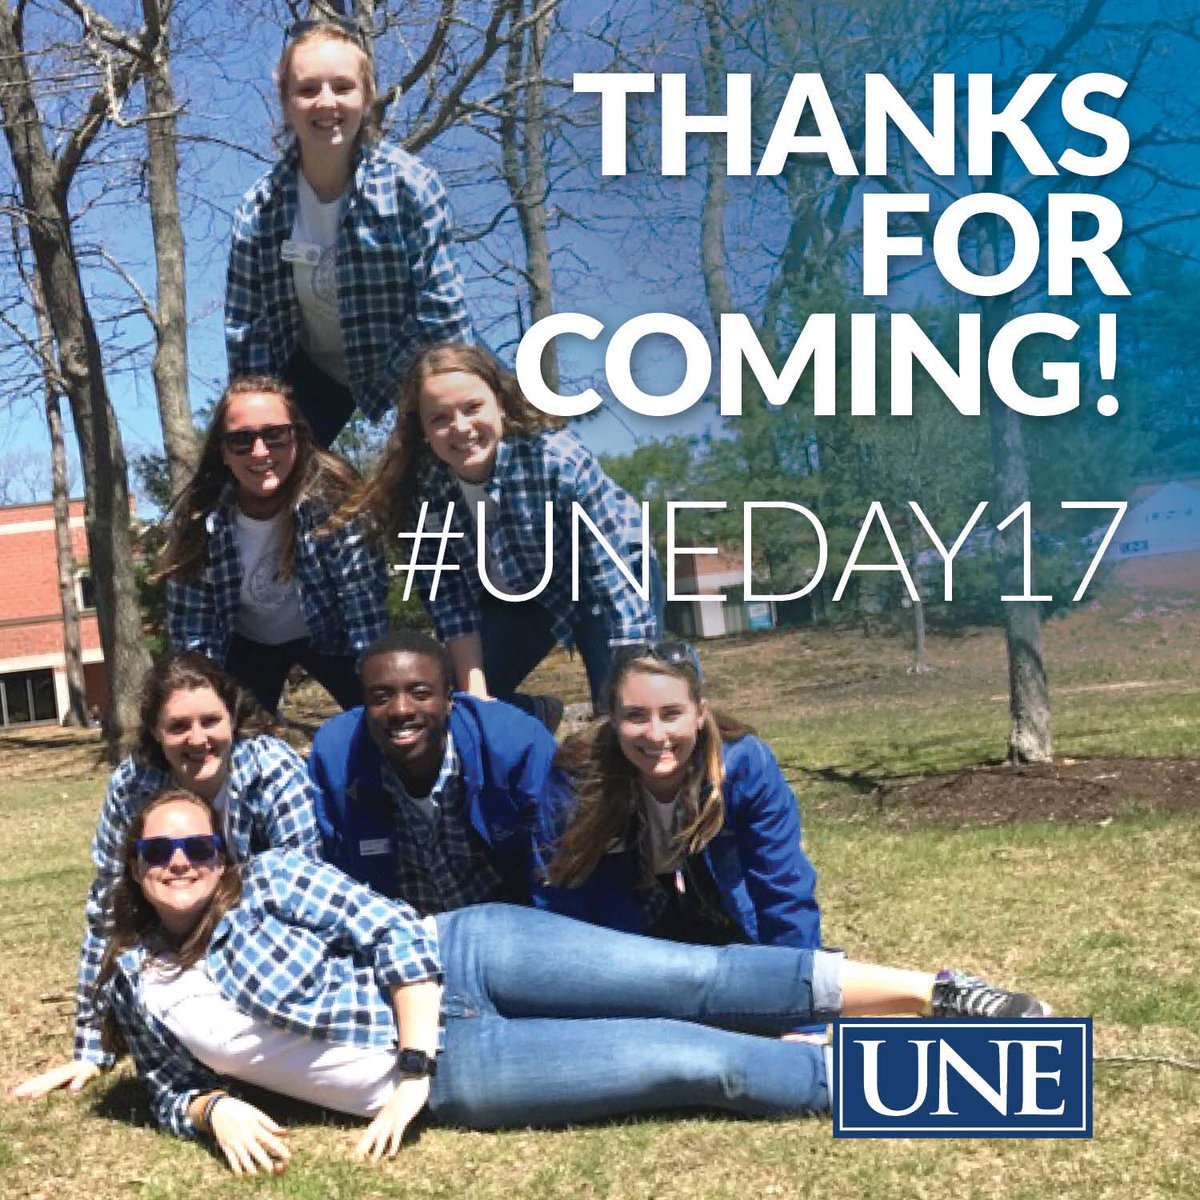 Thank you future Nor&#39;Easters and family for such a wonderful weekend! We hope you all had as much fun as we did! #uneday17 #une #une2021<br>http://pic.twitter.com/kbXjY5LDZt